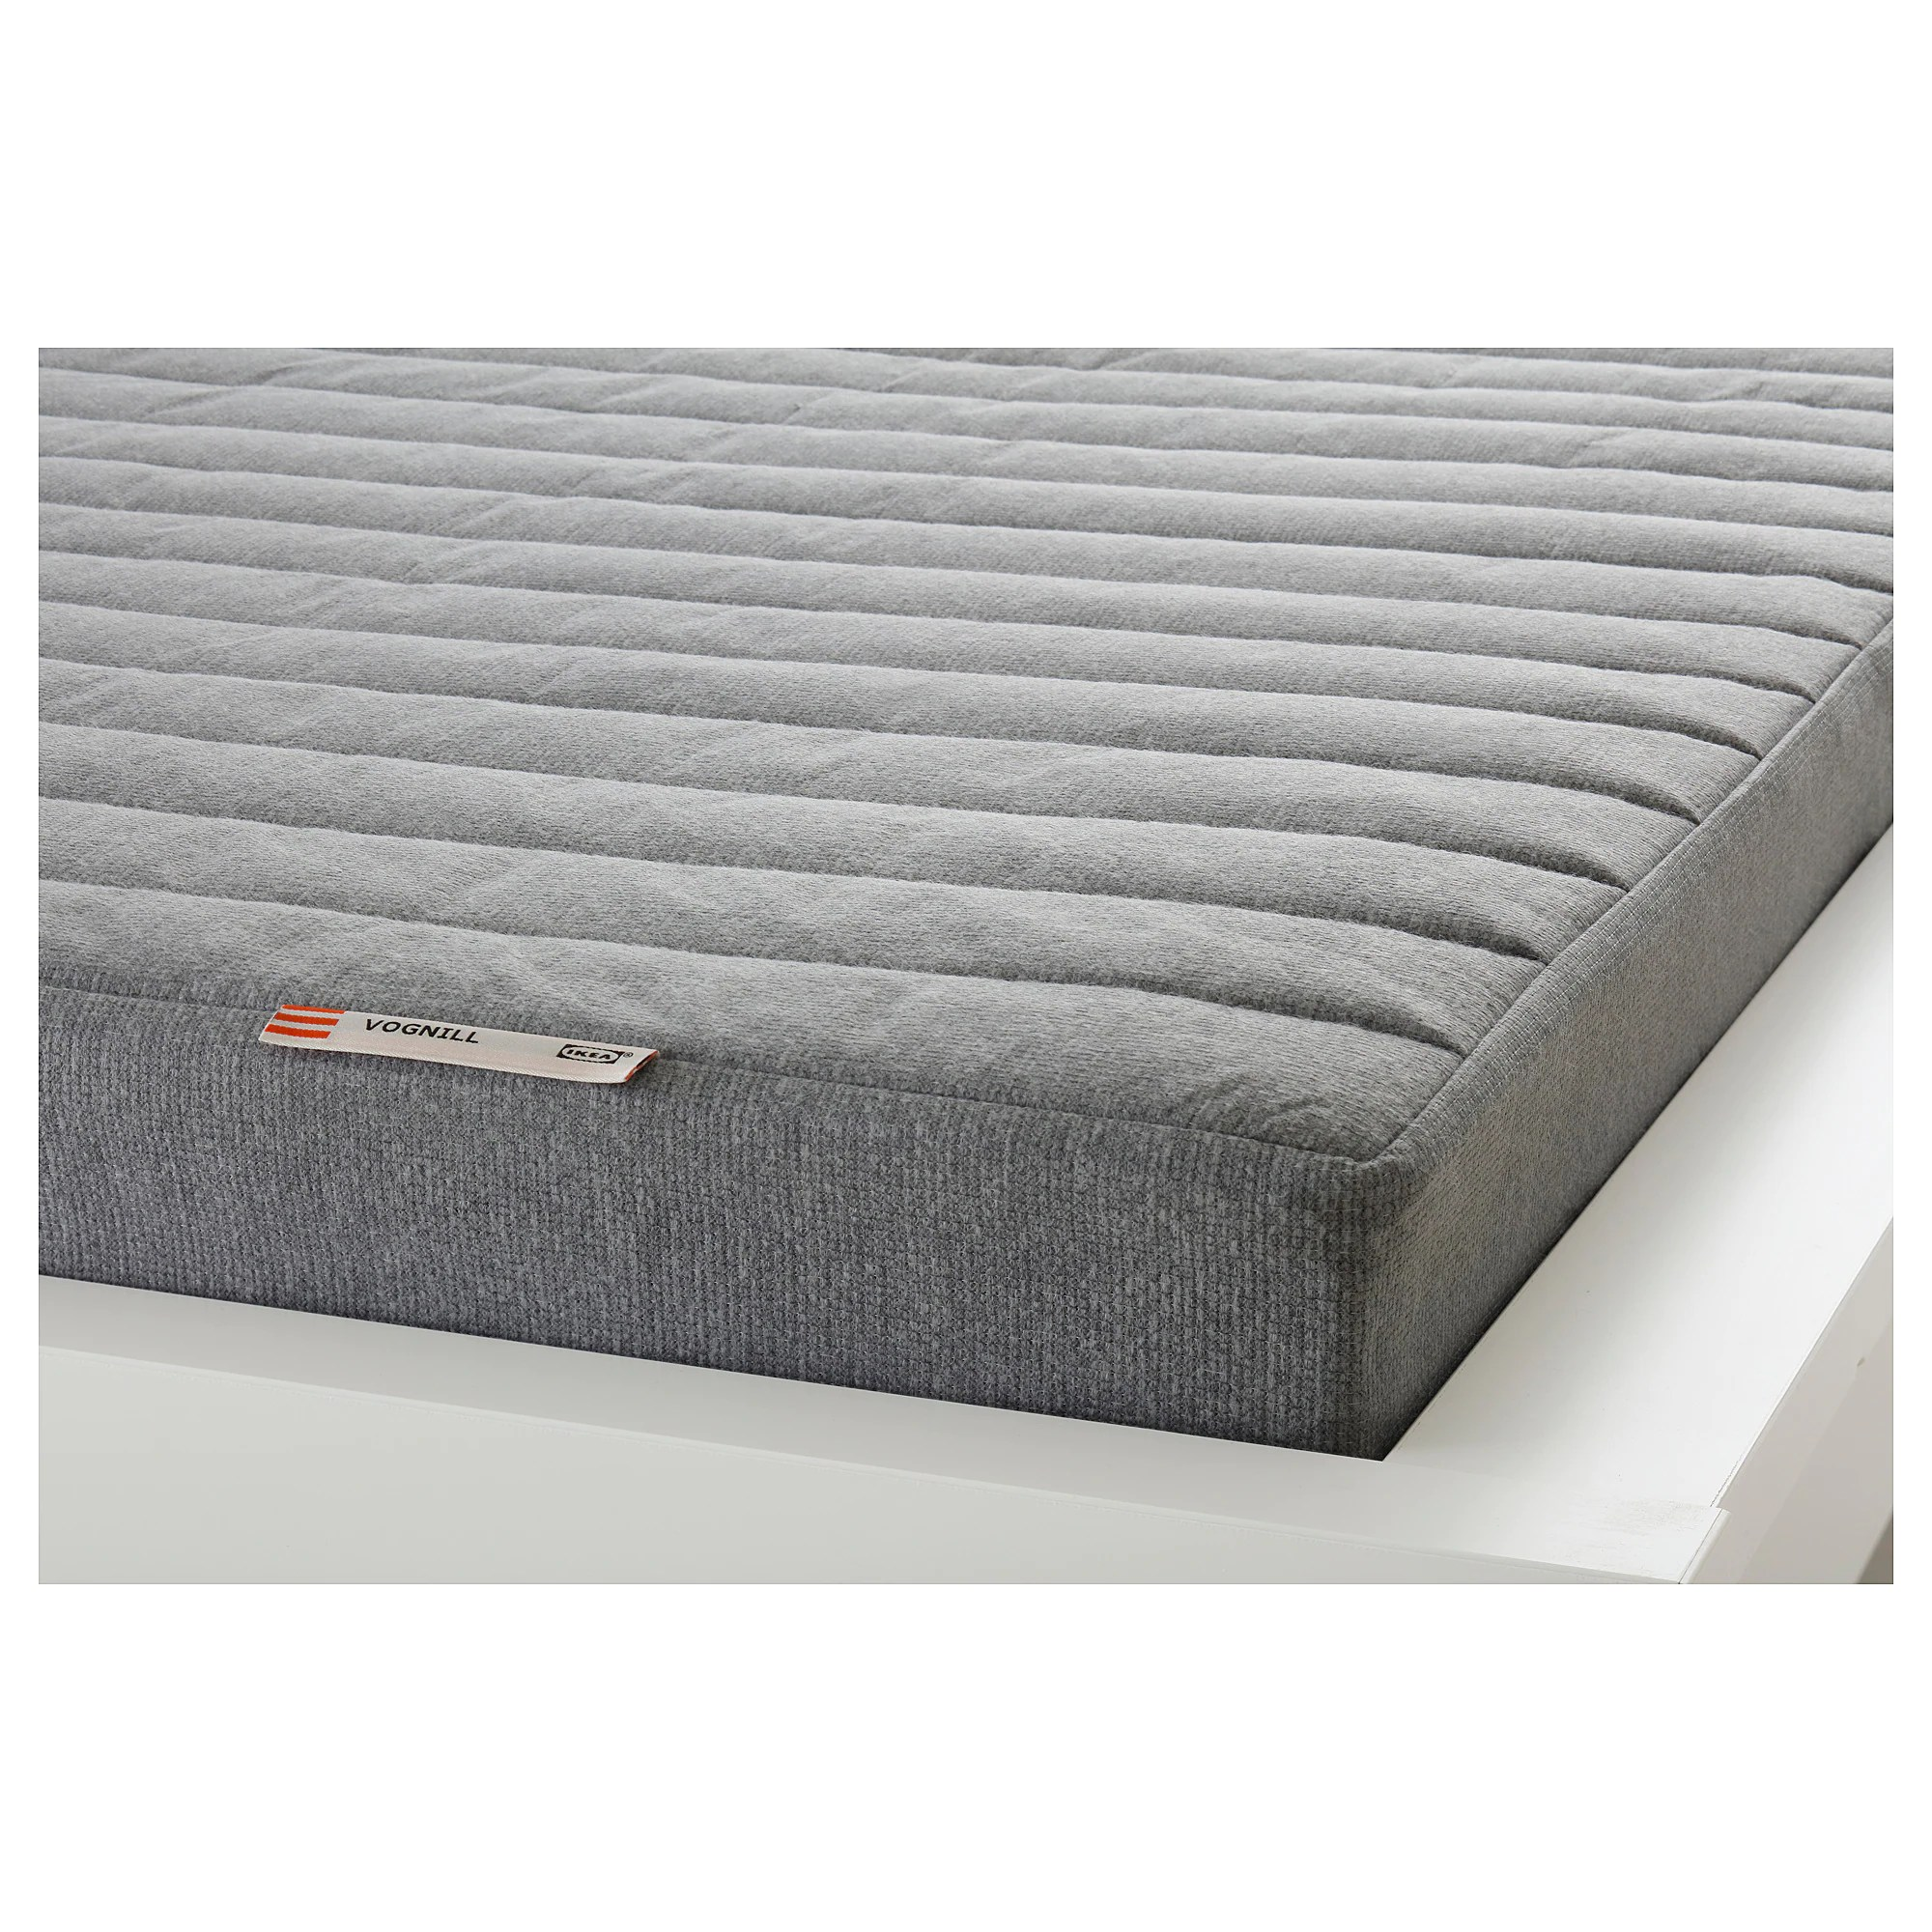 Latex Foam Mattress Coir Foam Mattress Vognill Firm Light Grey